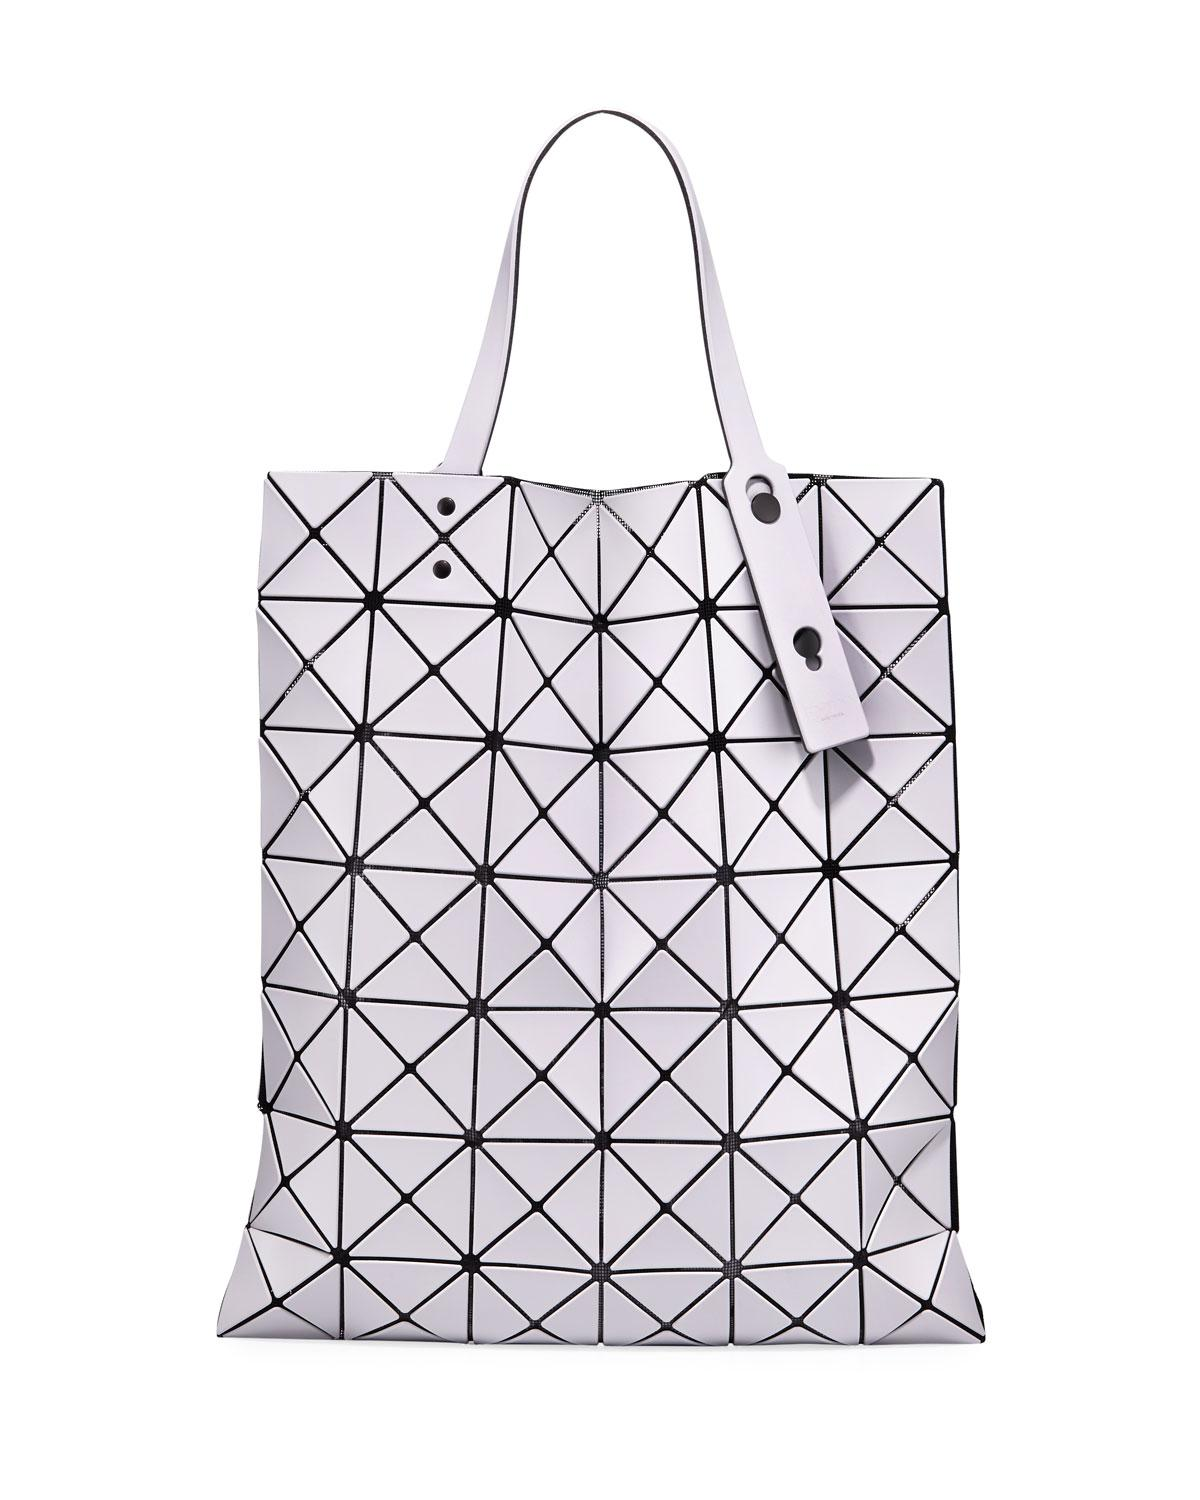 Bao Bao Issey Miyake Lucent Matte Tote Bag in Gray - Lyst b3a7a2f492cd4